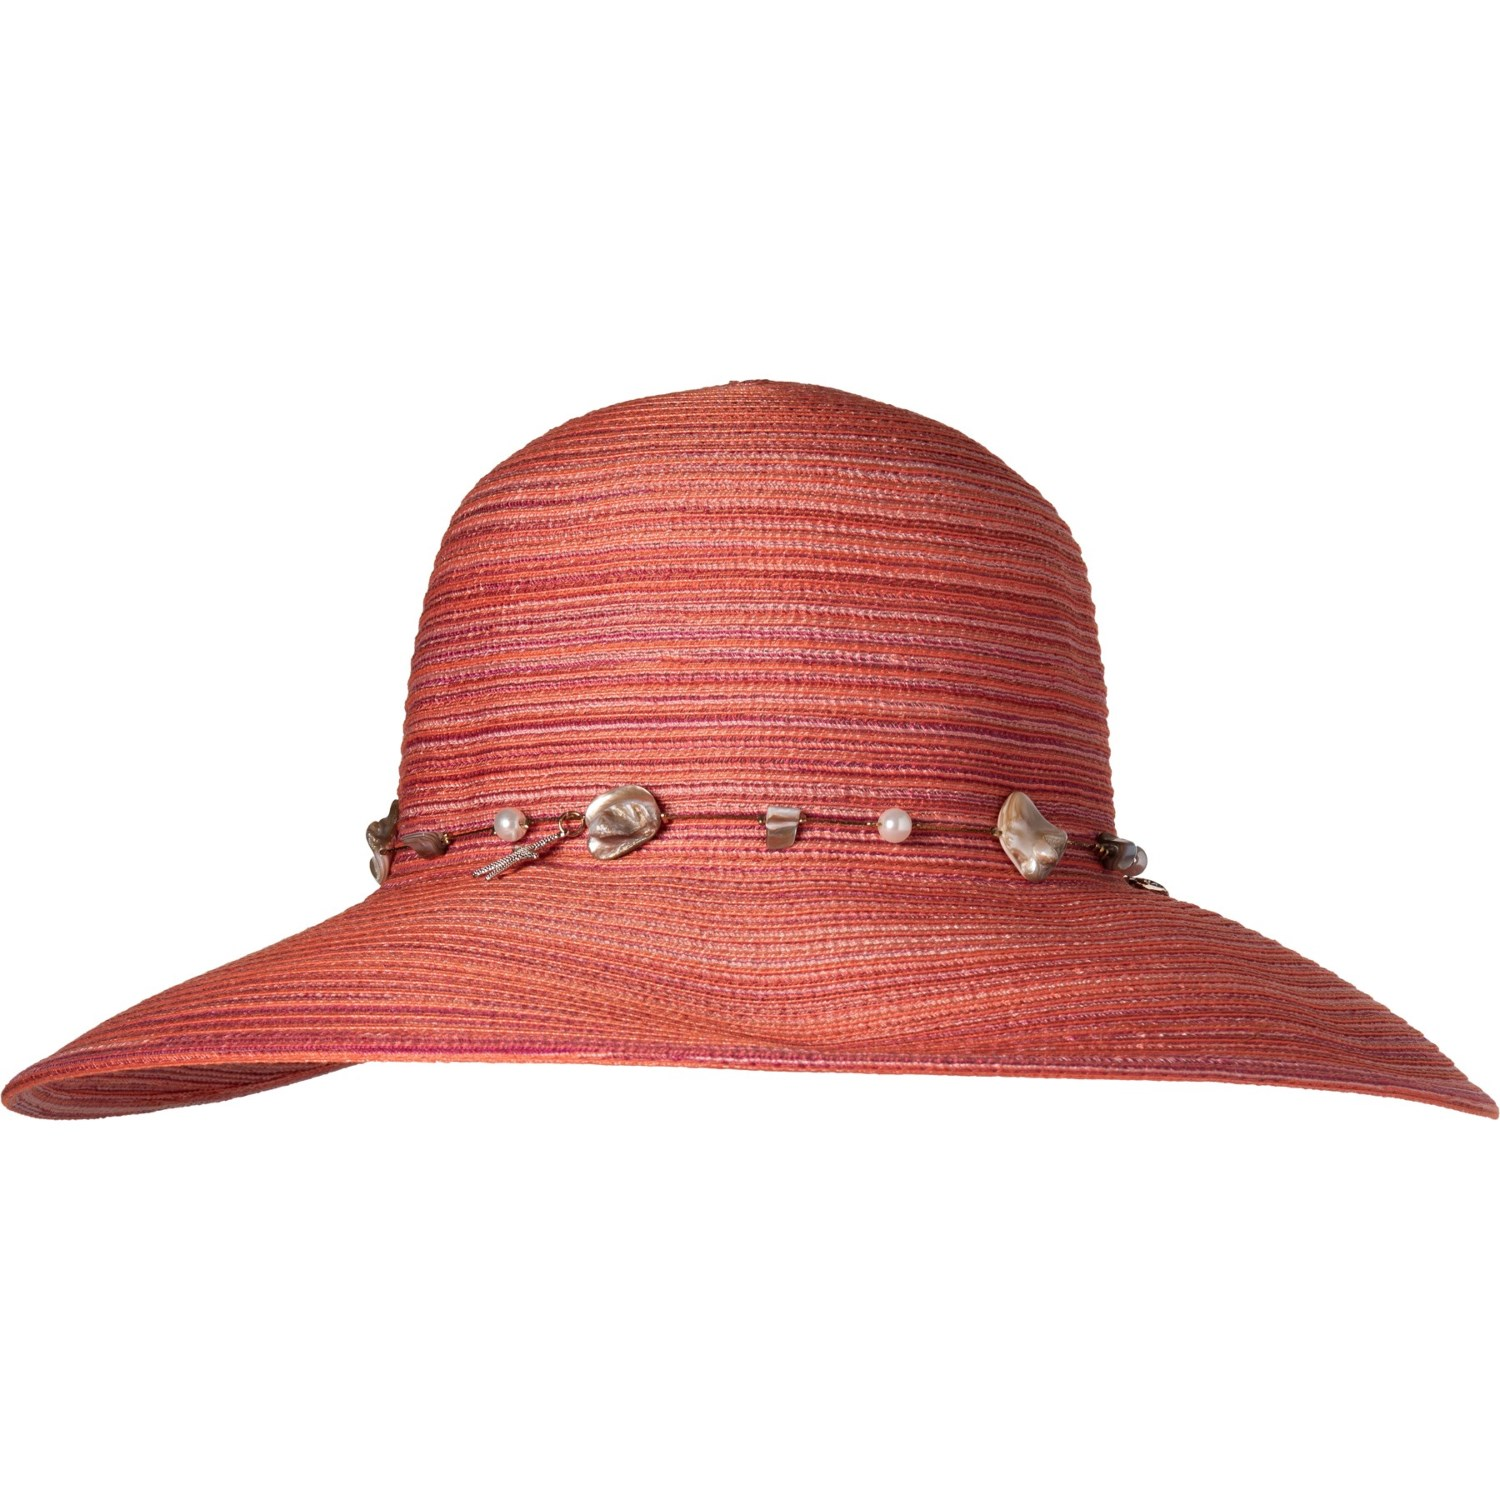 61198686b Dorfman Pacific Face Saver Hat with Bead Trim - UPF 50 (For Women)